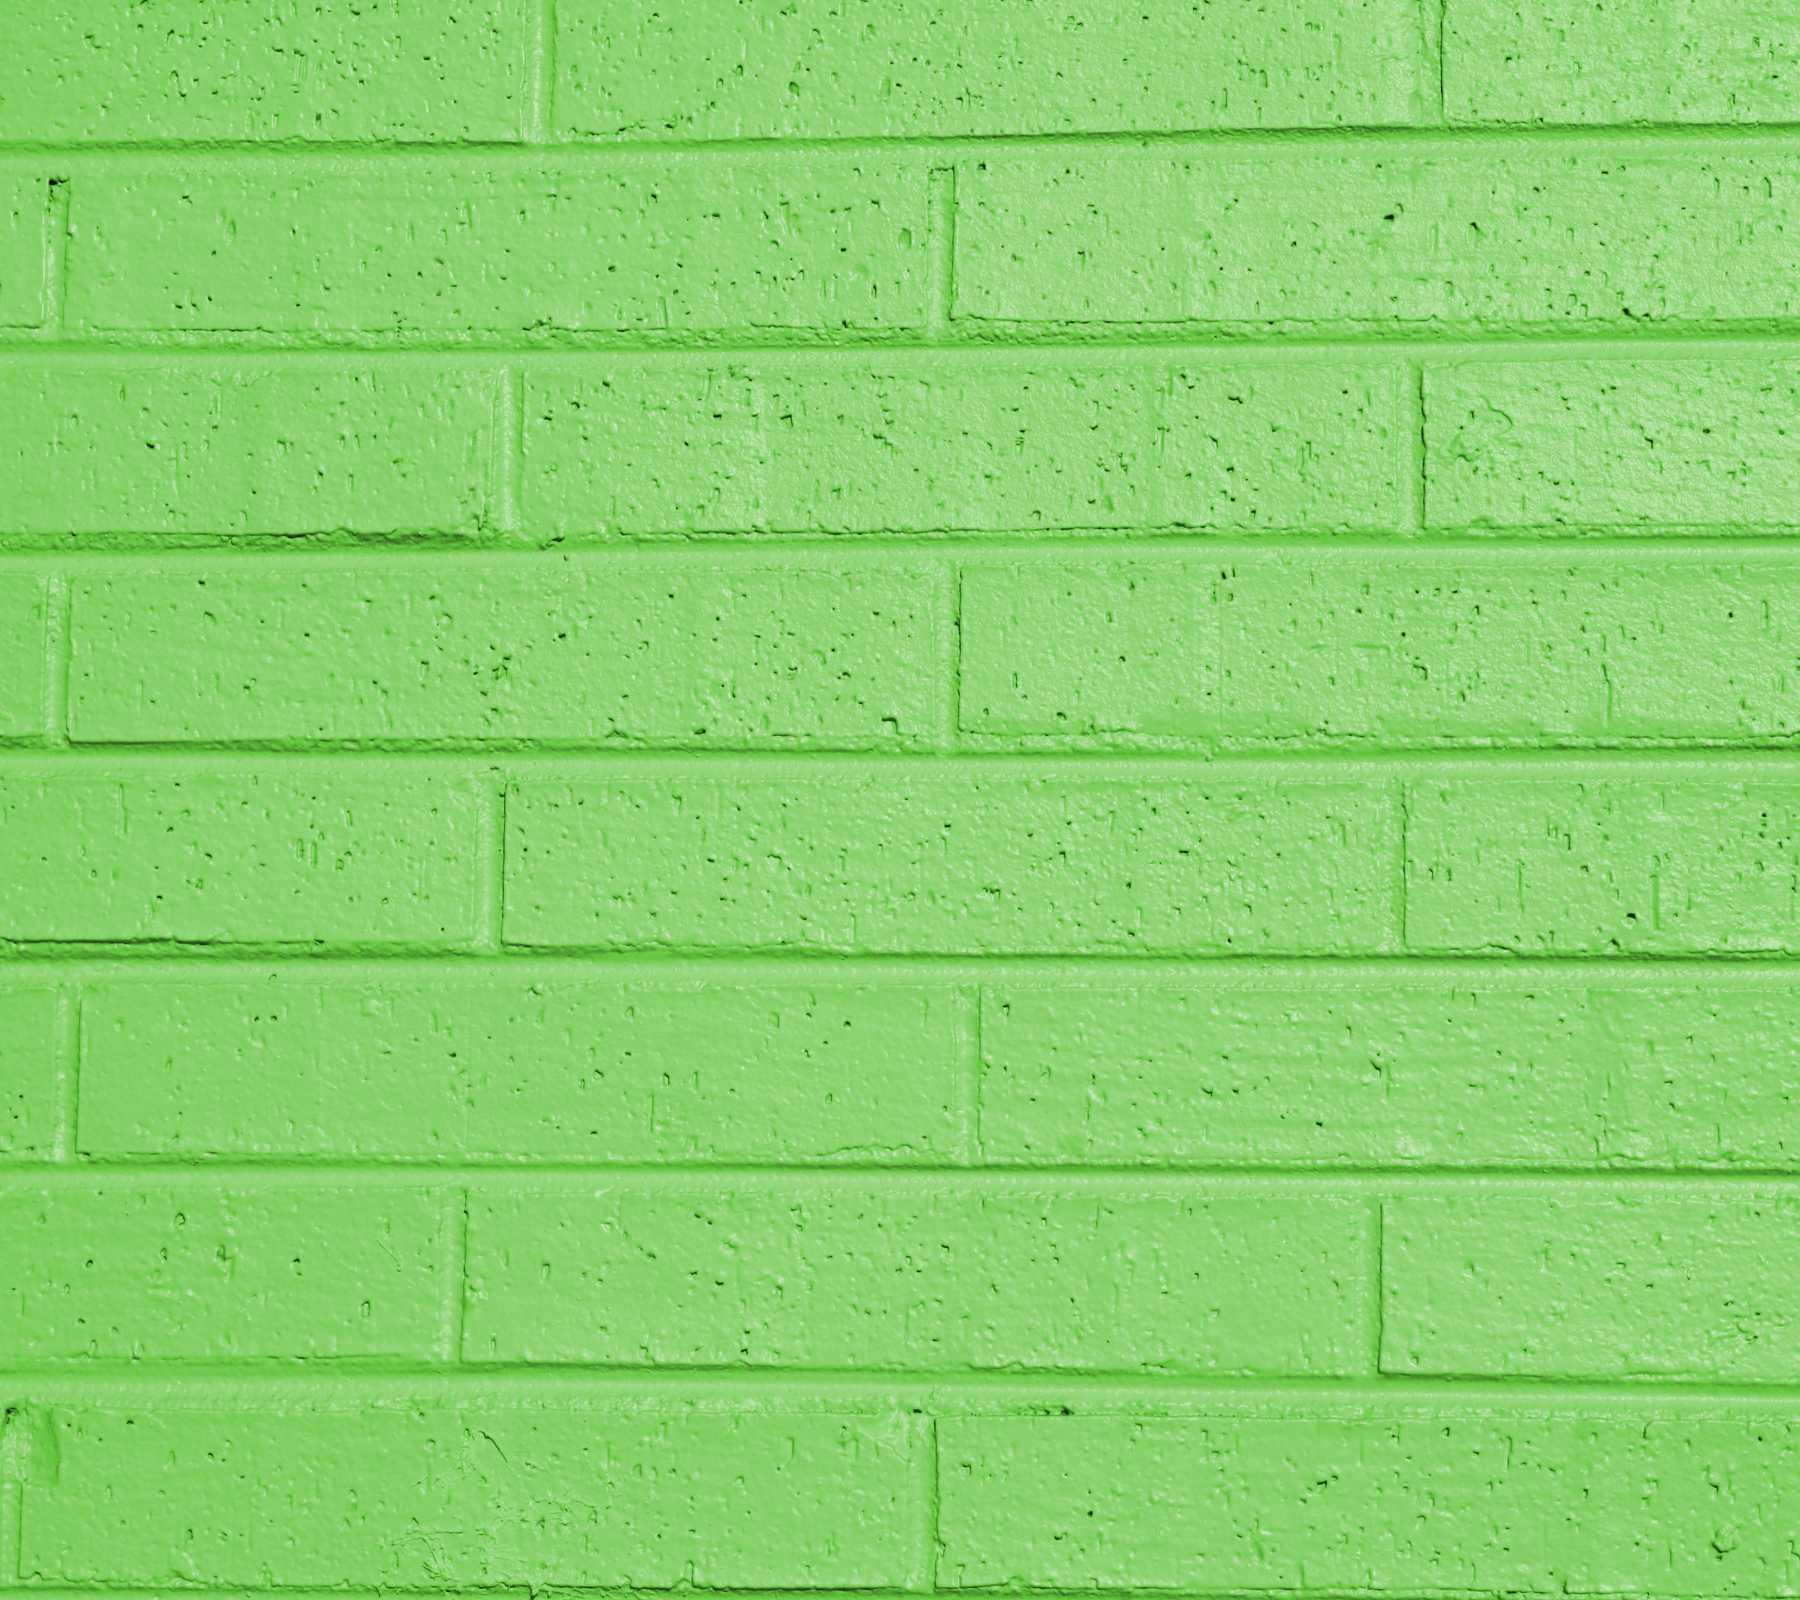 Free Download Lime Green Painted Brick Wall 1800x1600 For